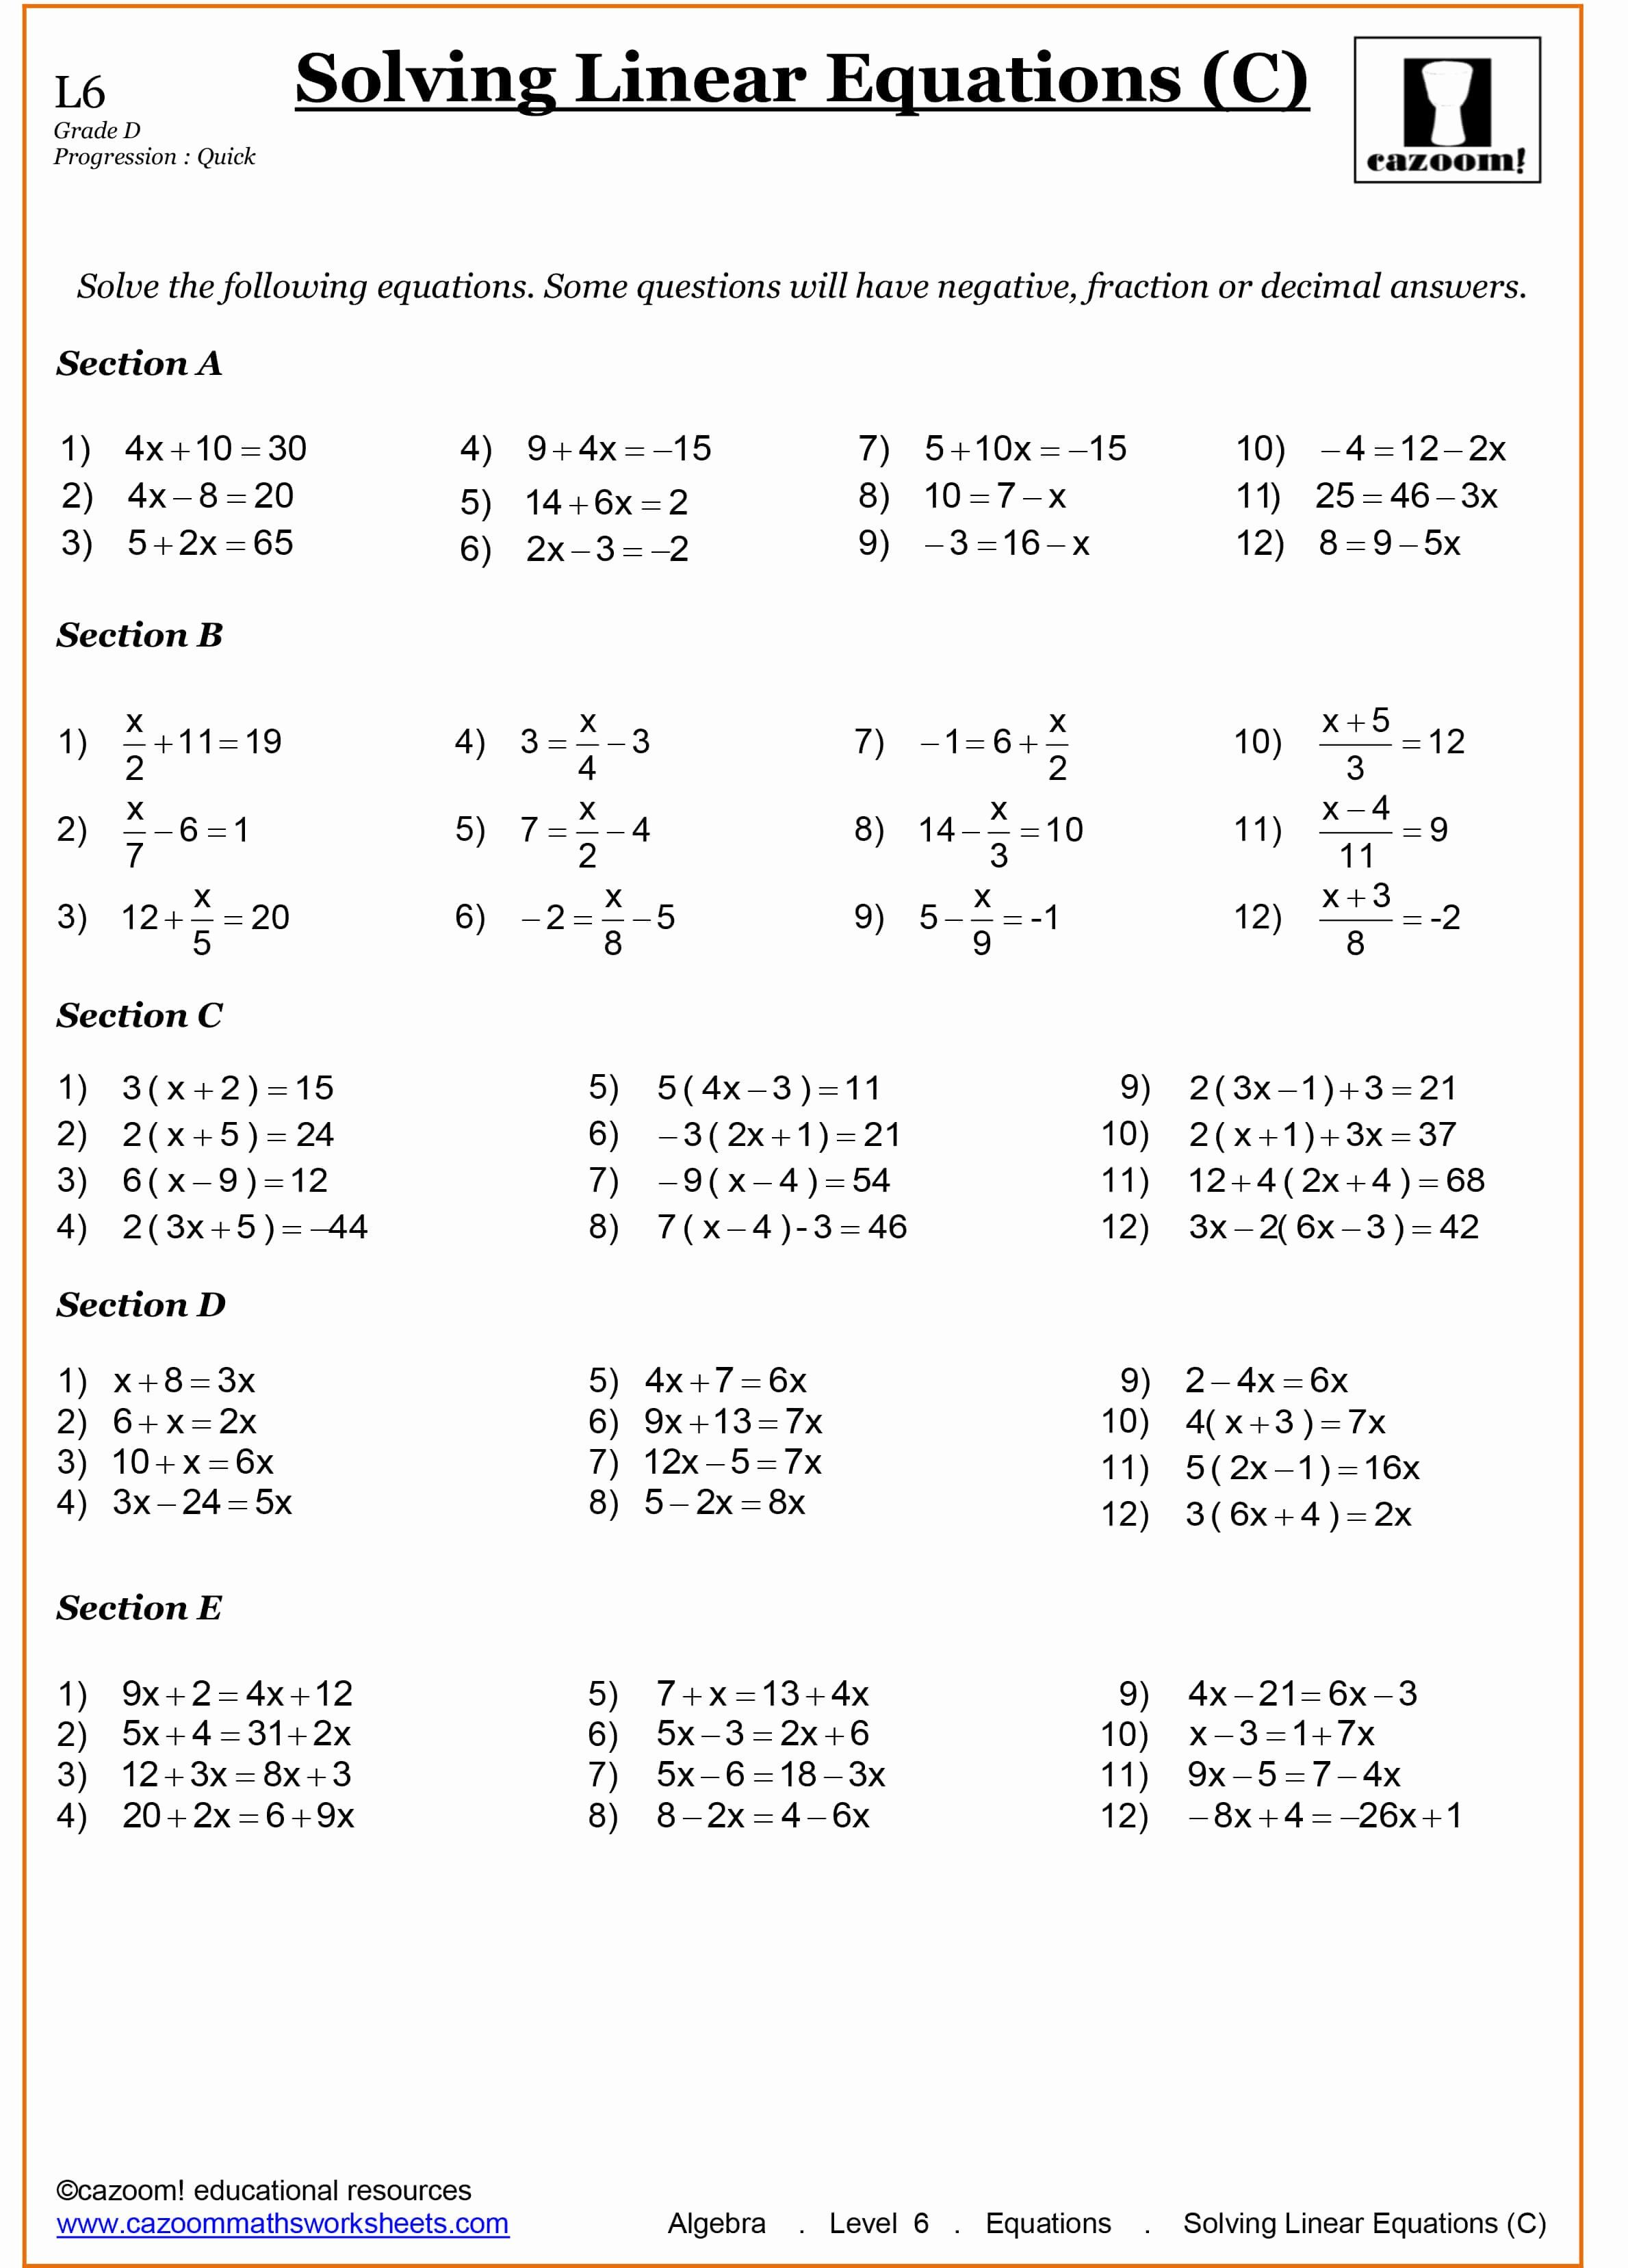 50 Solving Linear Equations Worksheet In